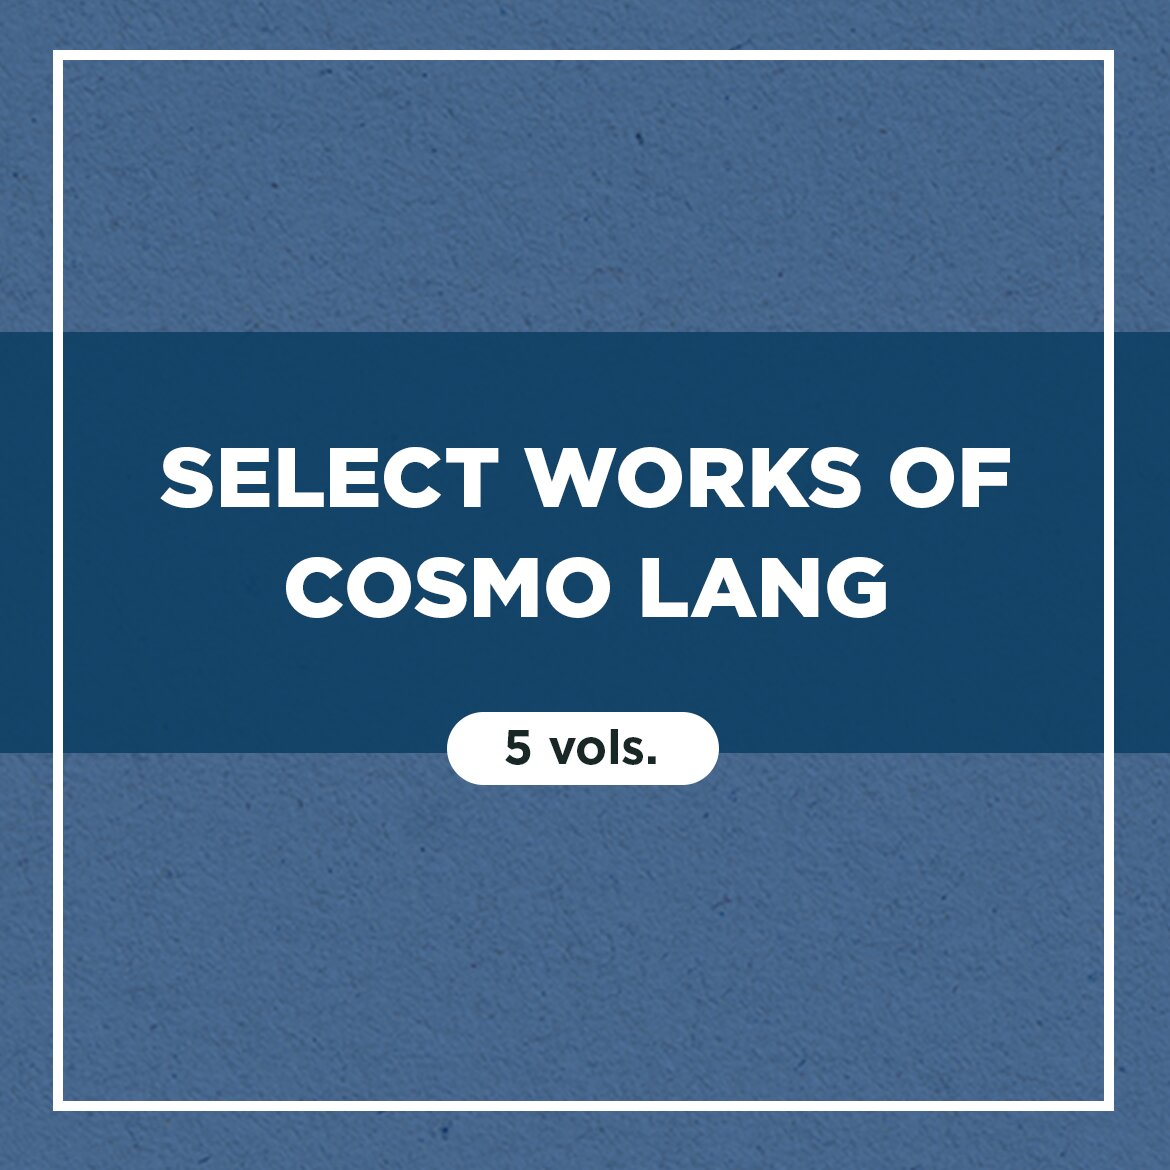 Select Works of Cosmo Lang (5 vols.)